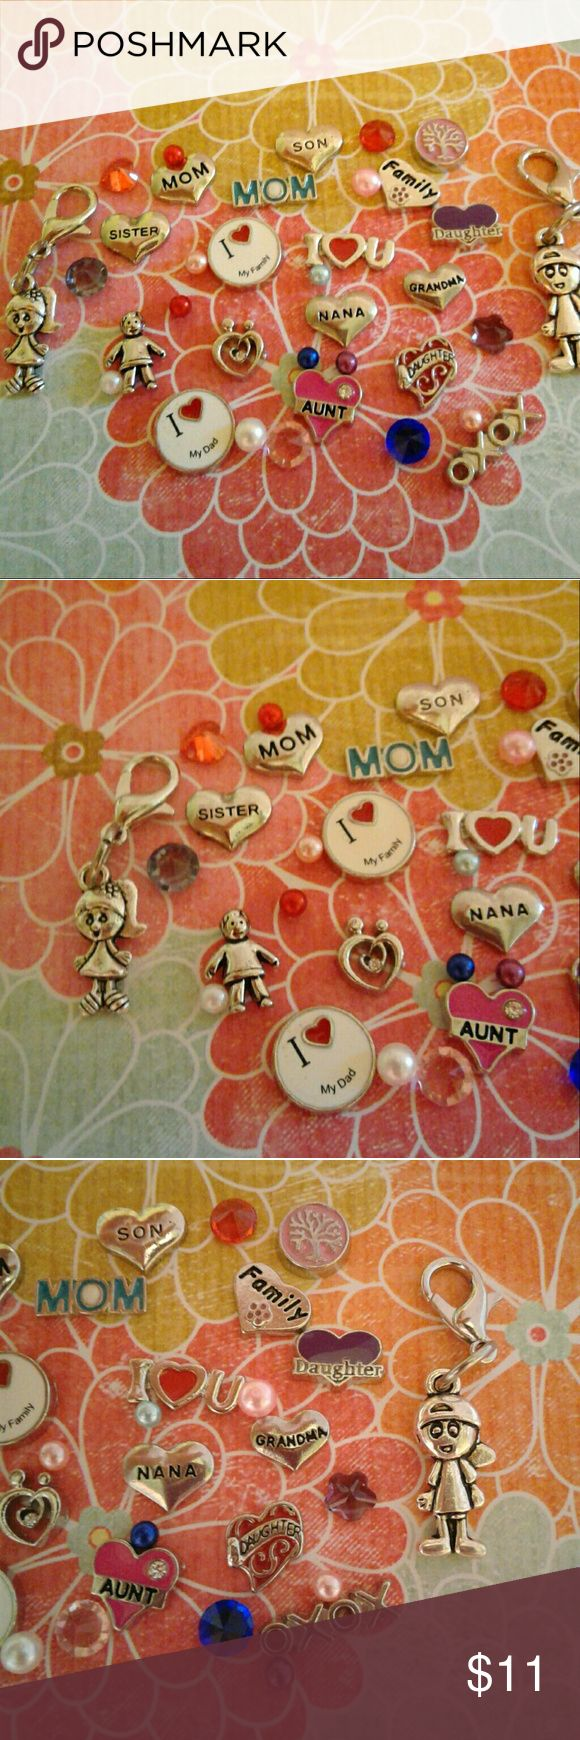 25 pc Family Floating Charm Set for Memory Locket Family theme floating charms for Living Locket. Includes Mom, Aunt, Daughter ,Dad, Son, Grandma, and more! Over 25 pieces including crystals and faux pearls! They measure from 3mm to 12mm,have no hole,  and float around when placed inside the glass locket. Jewelry